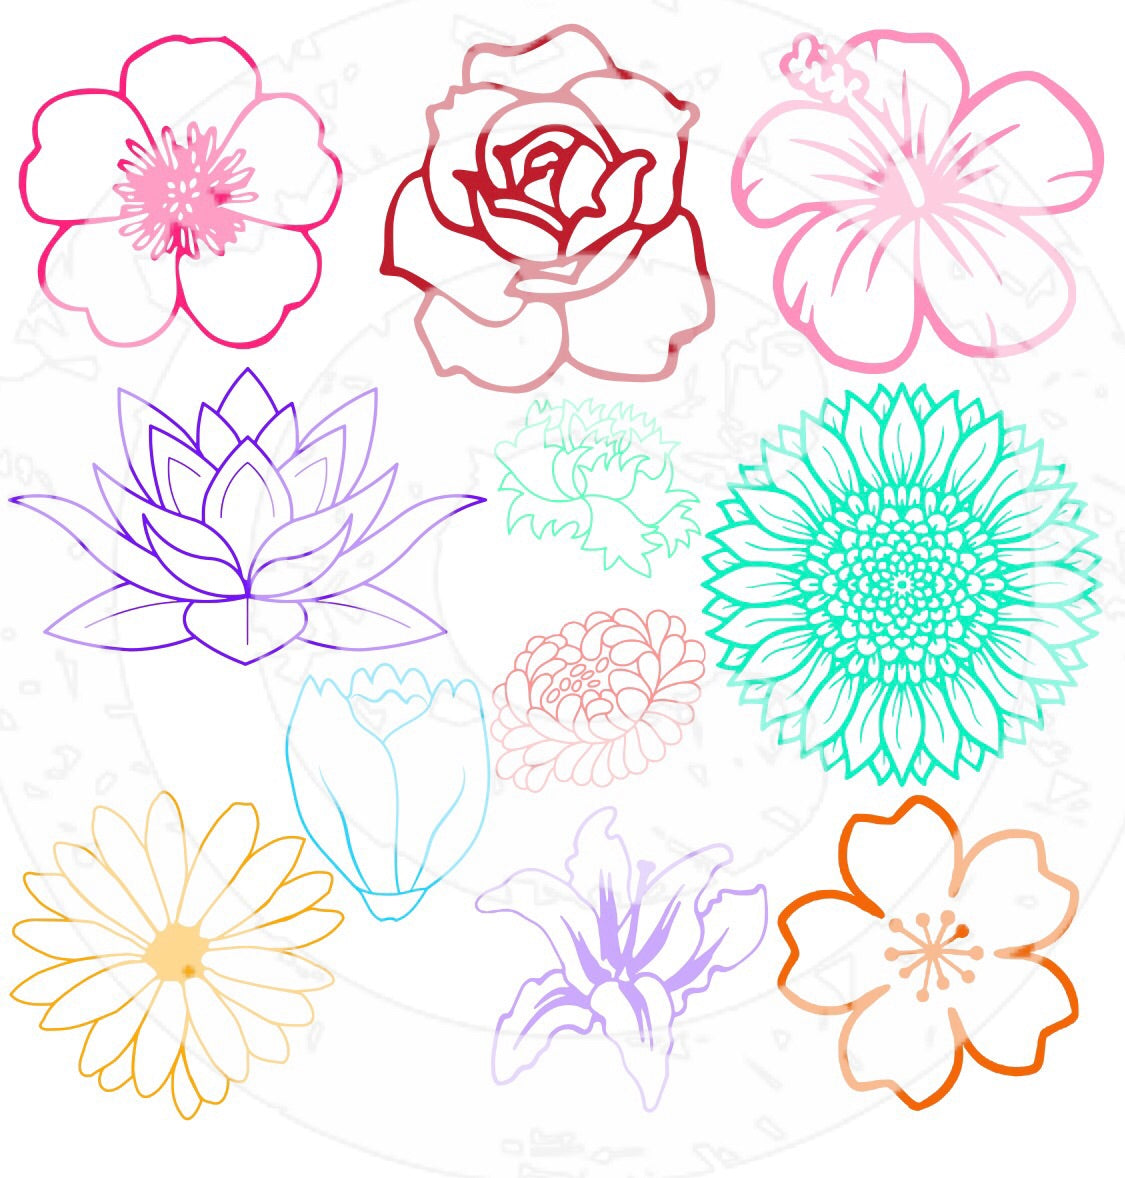 Flowers SVG Bundle - JPIBlanks.com